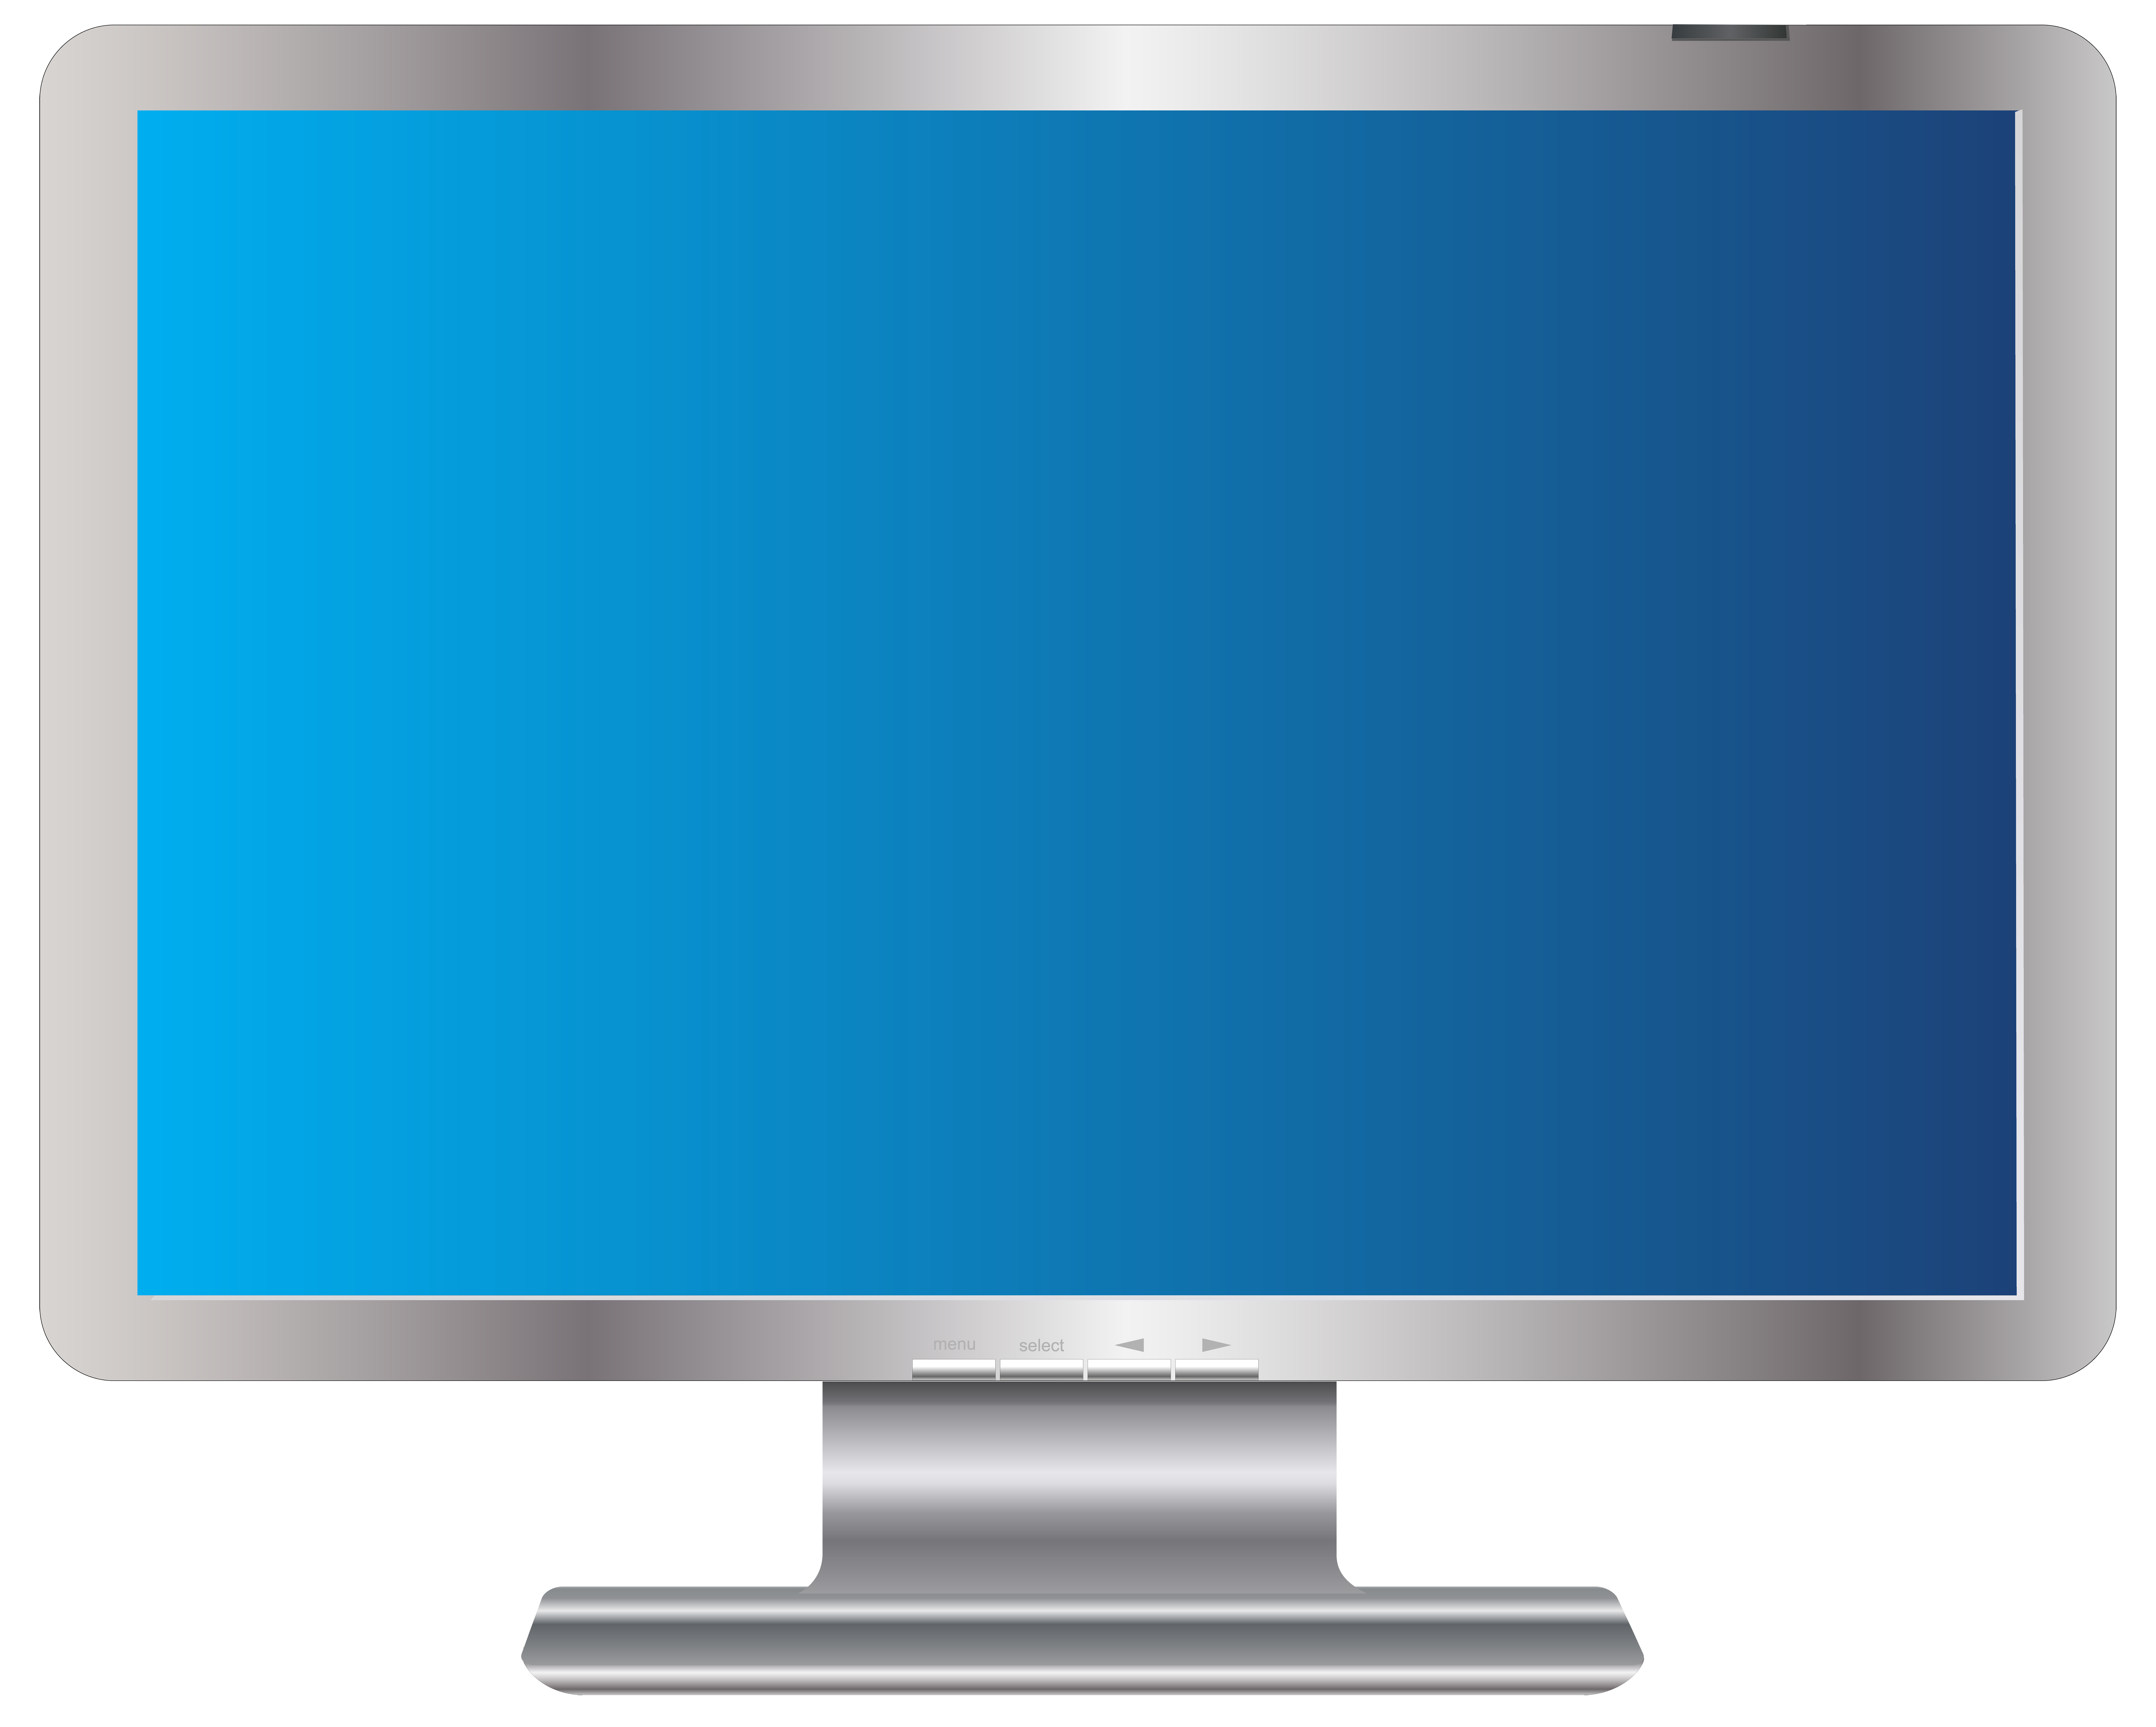 PC Monitor Transparent PNG Clip Art Image.